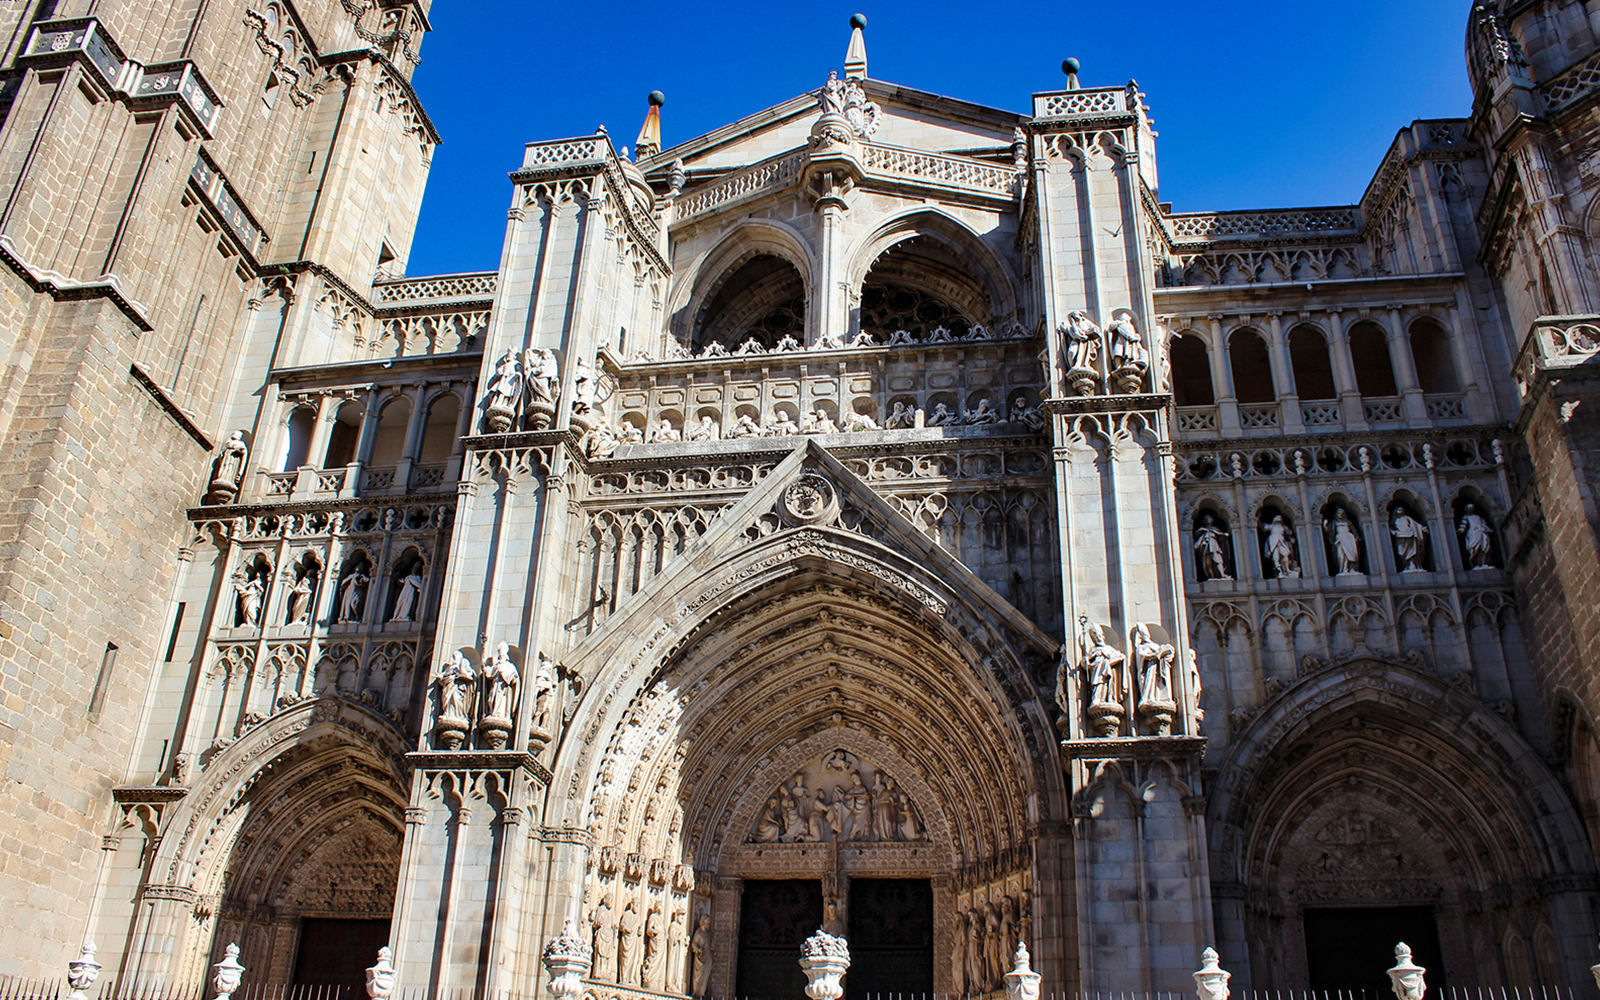 B4fa6b57 7c7c 41c0 ba68 1928af86be58 10952 madrid toledo guided tour with optional cathedral visit  01